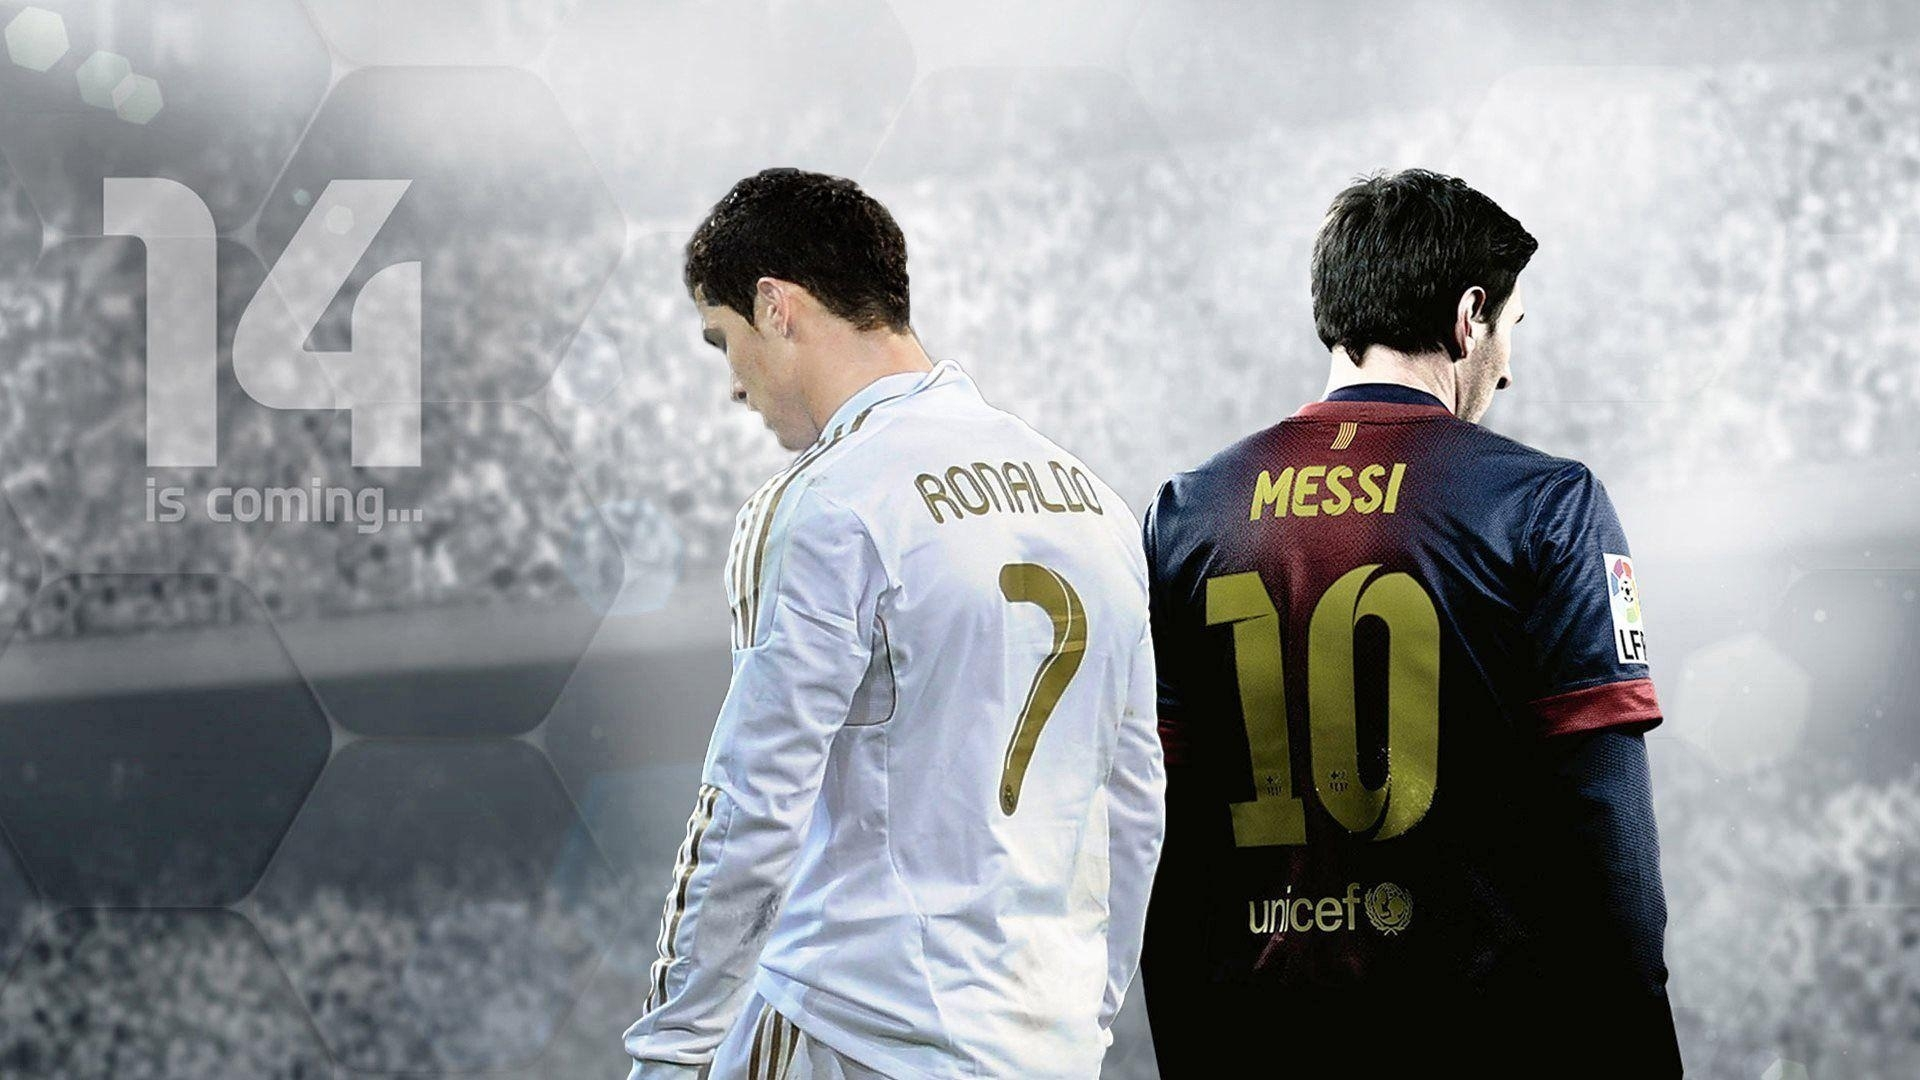 messi vs ronaldo wallpapers 2017 hd - wallpaper cave